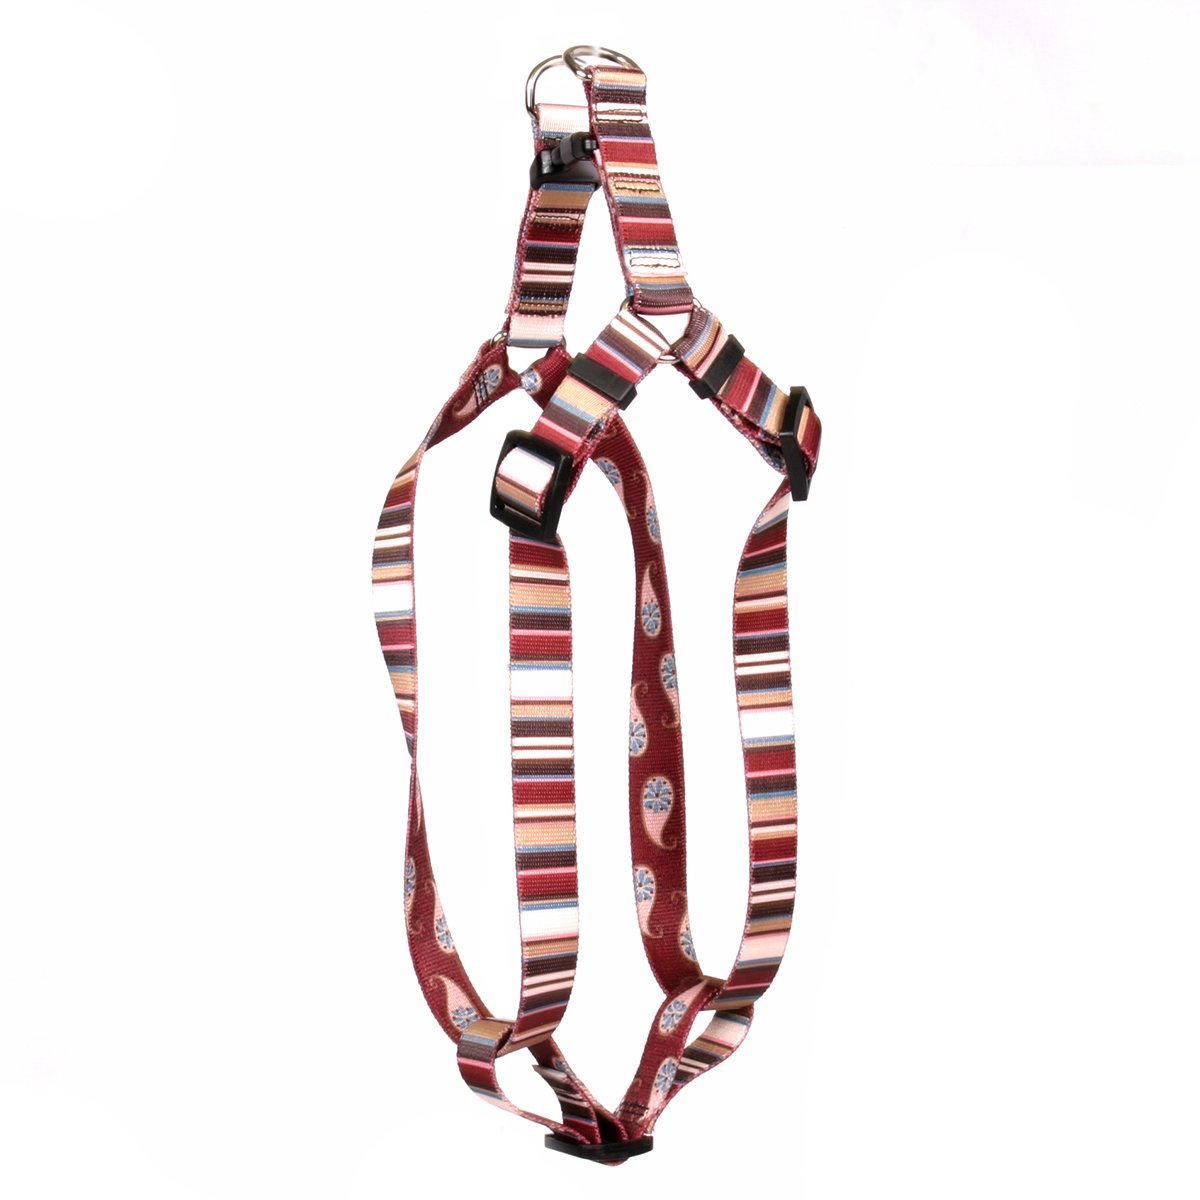 Yellow Dog Design Burgundy Stripes Step-in Dog Harness 1'' Wide and Fits Chest of 25 to 40'', Large by Yellow Dog Design (Image #1)